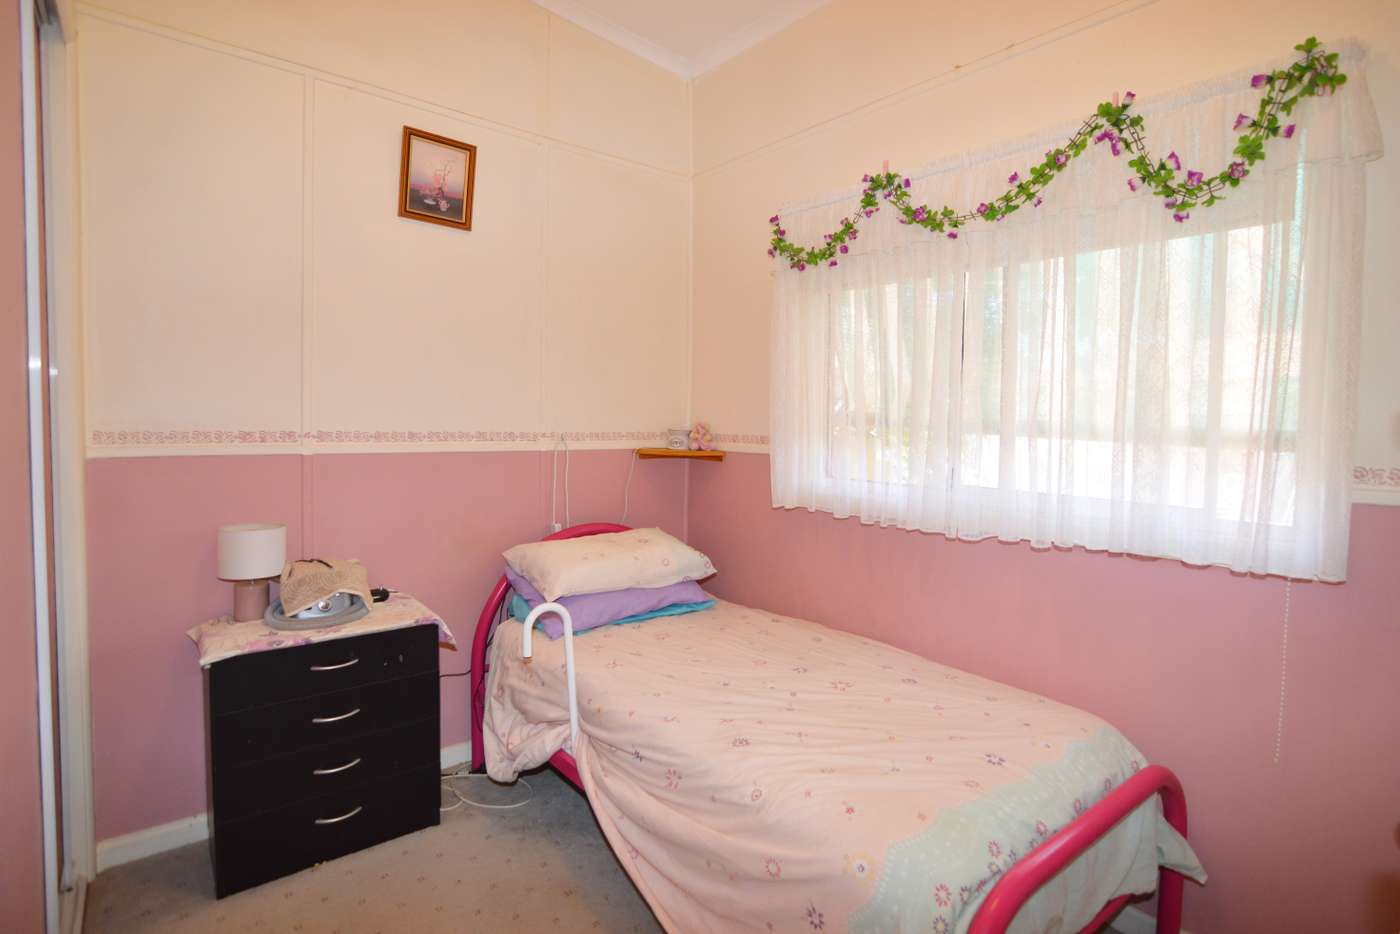 Sixth view of Homely house listing, 211 Commercial Street, Merbein VIC 3505